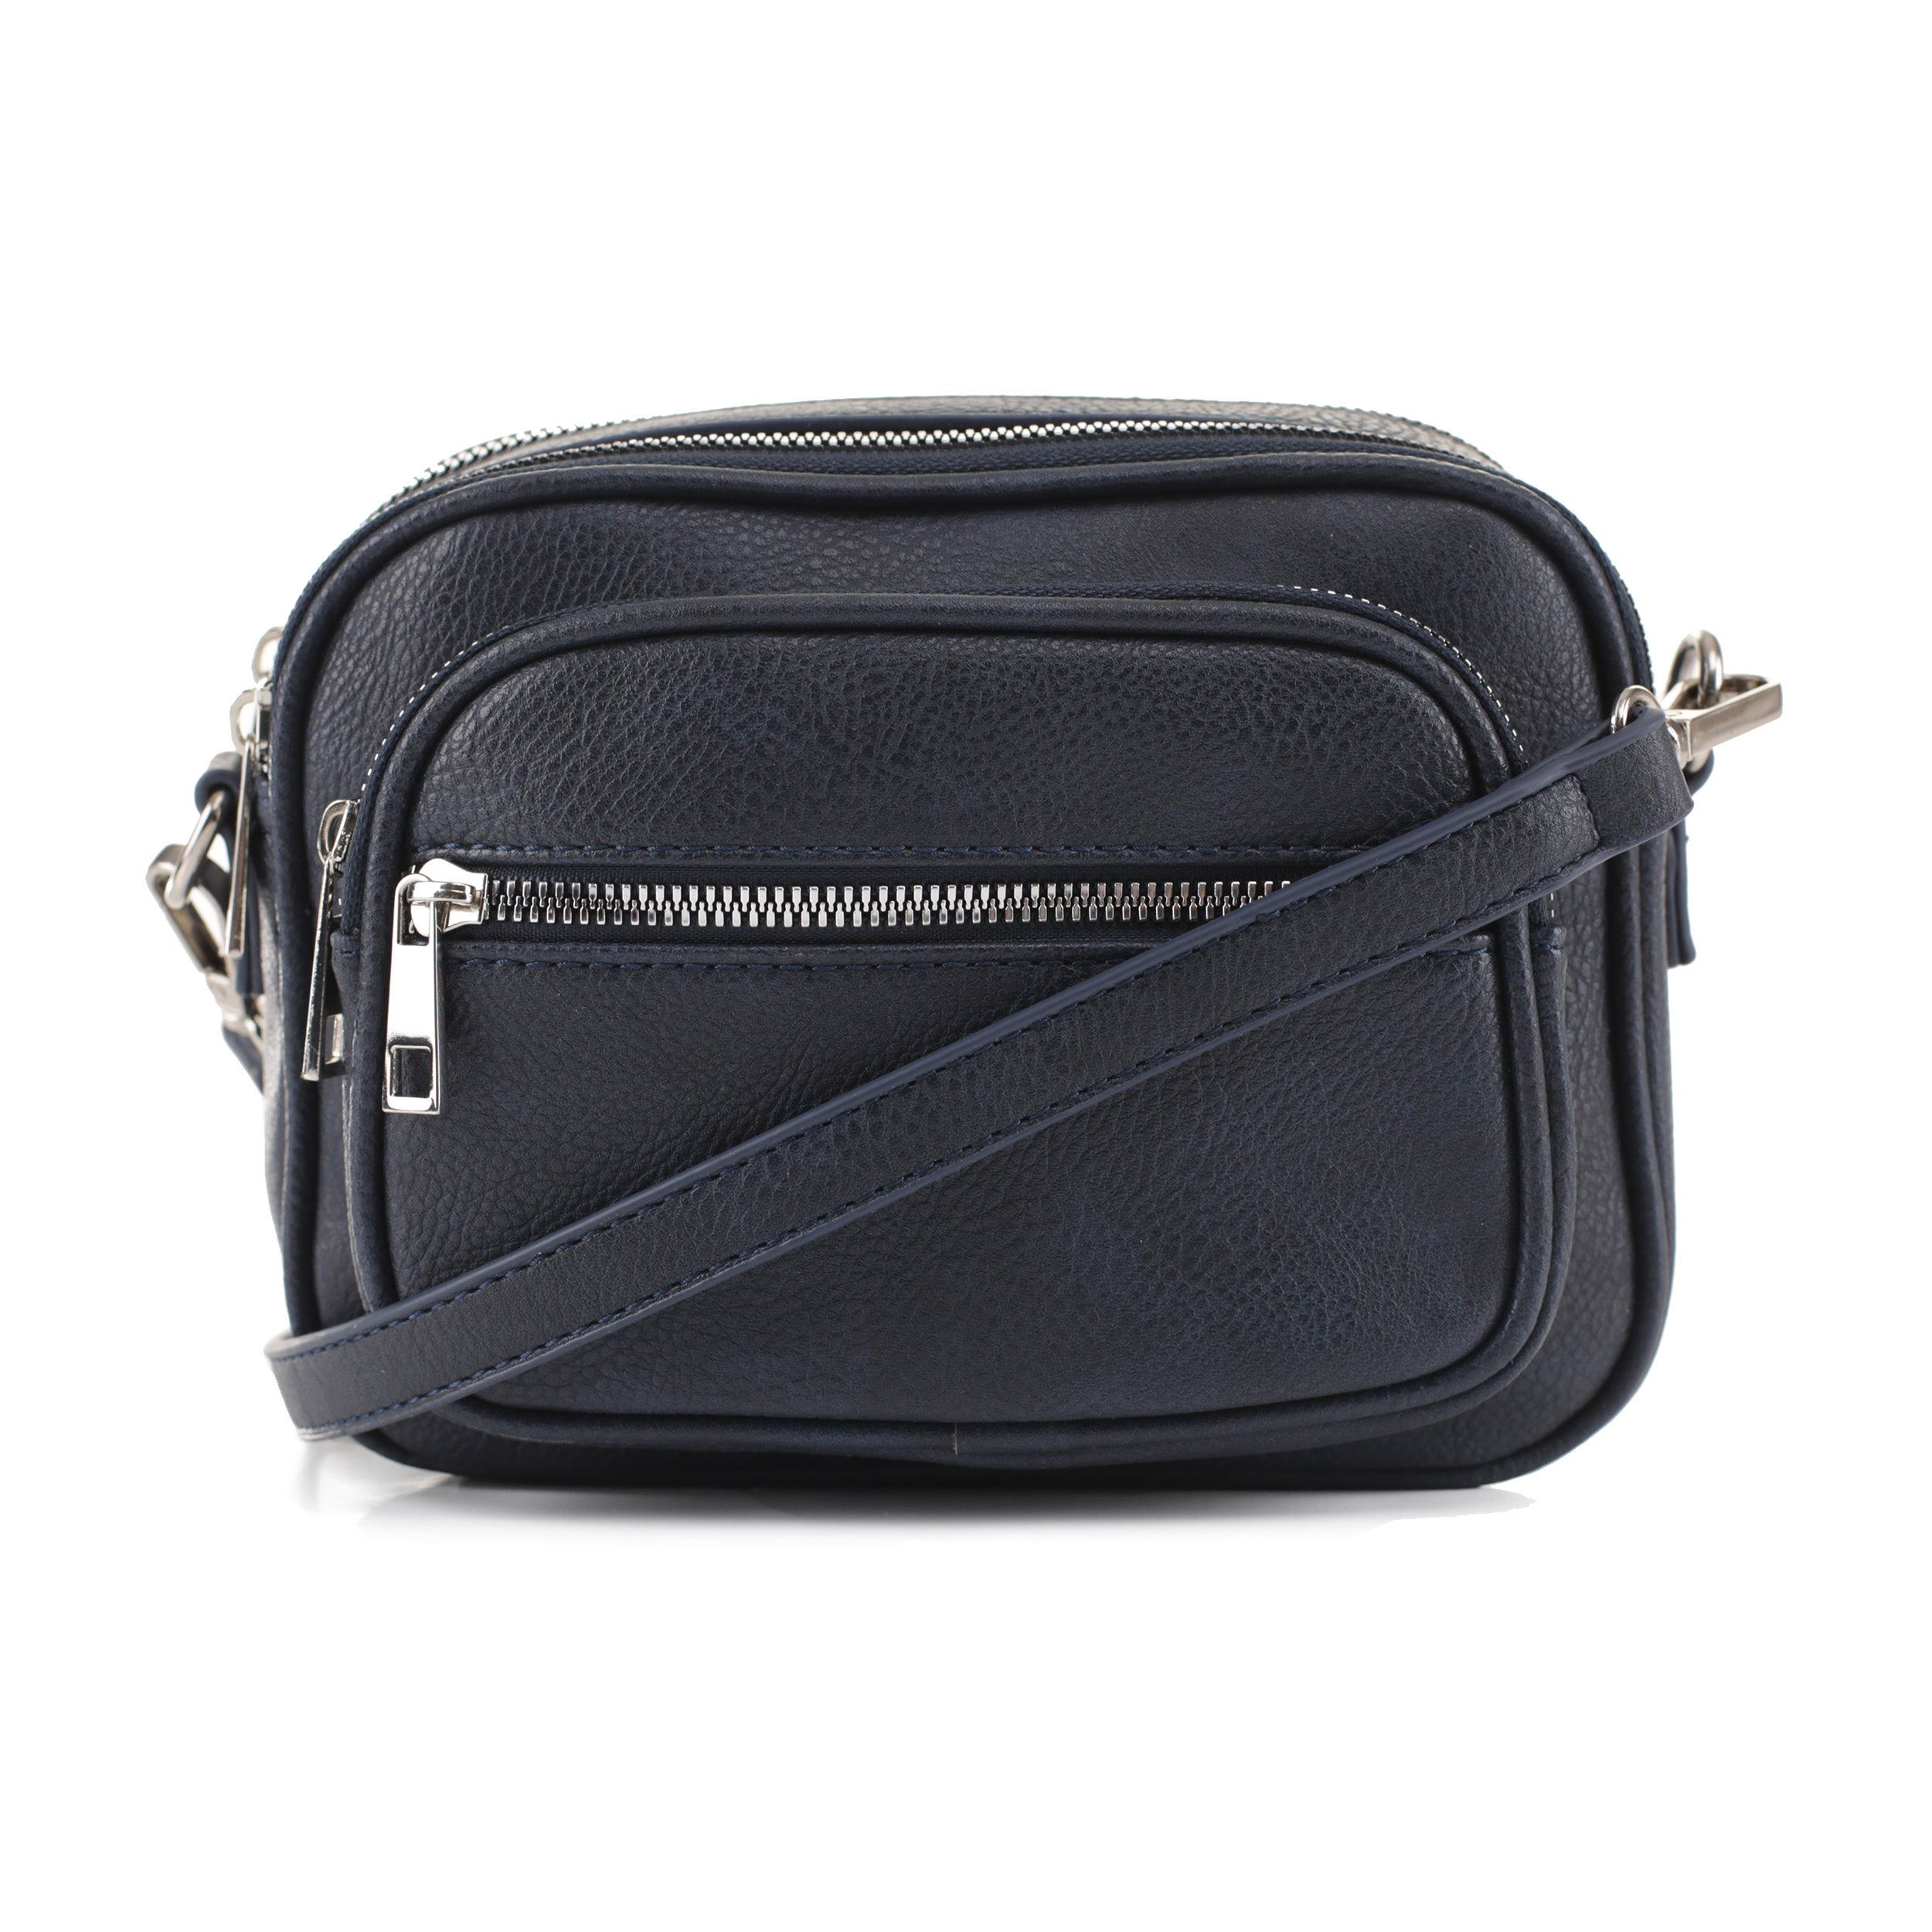 Zoie Crossbody Camera Bag